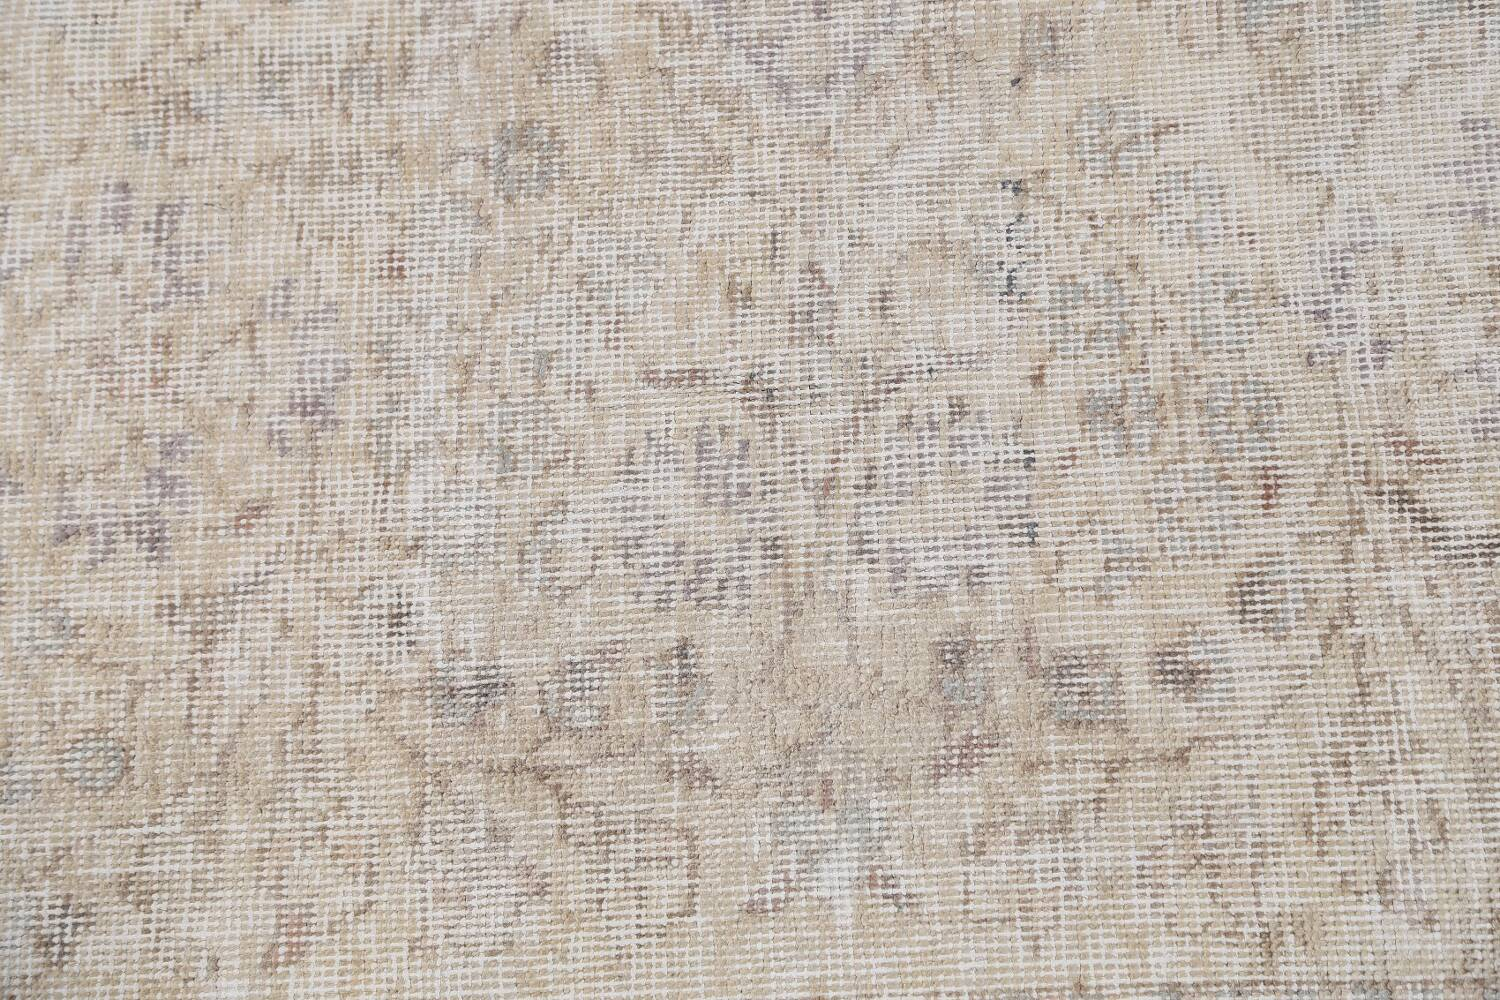 Muted Distressed Tabriz Persian Area Rug 8x11 image 10